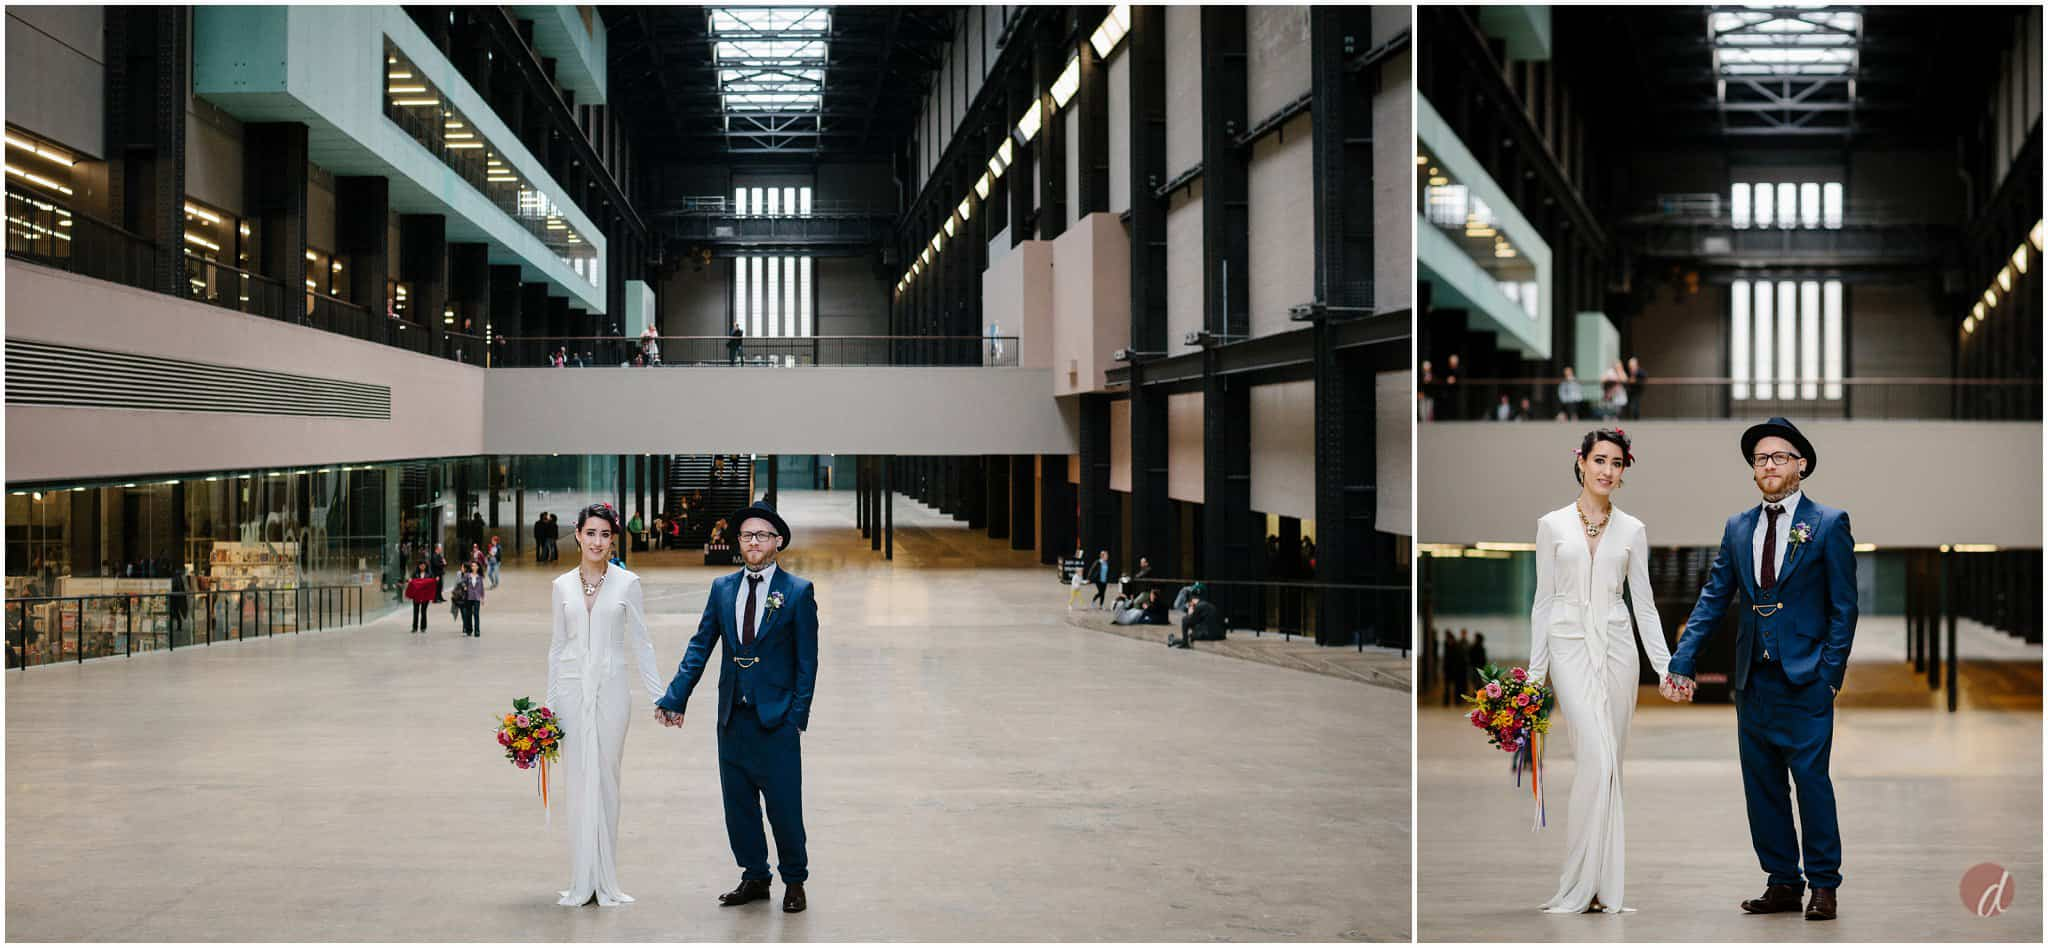 wedding tate modern turbine hall